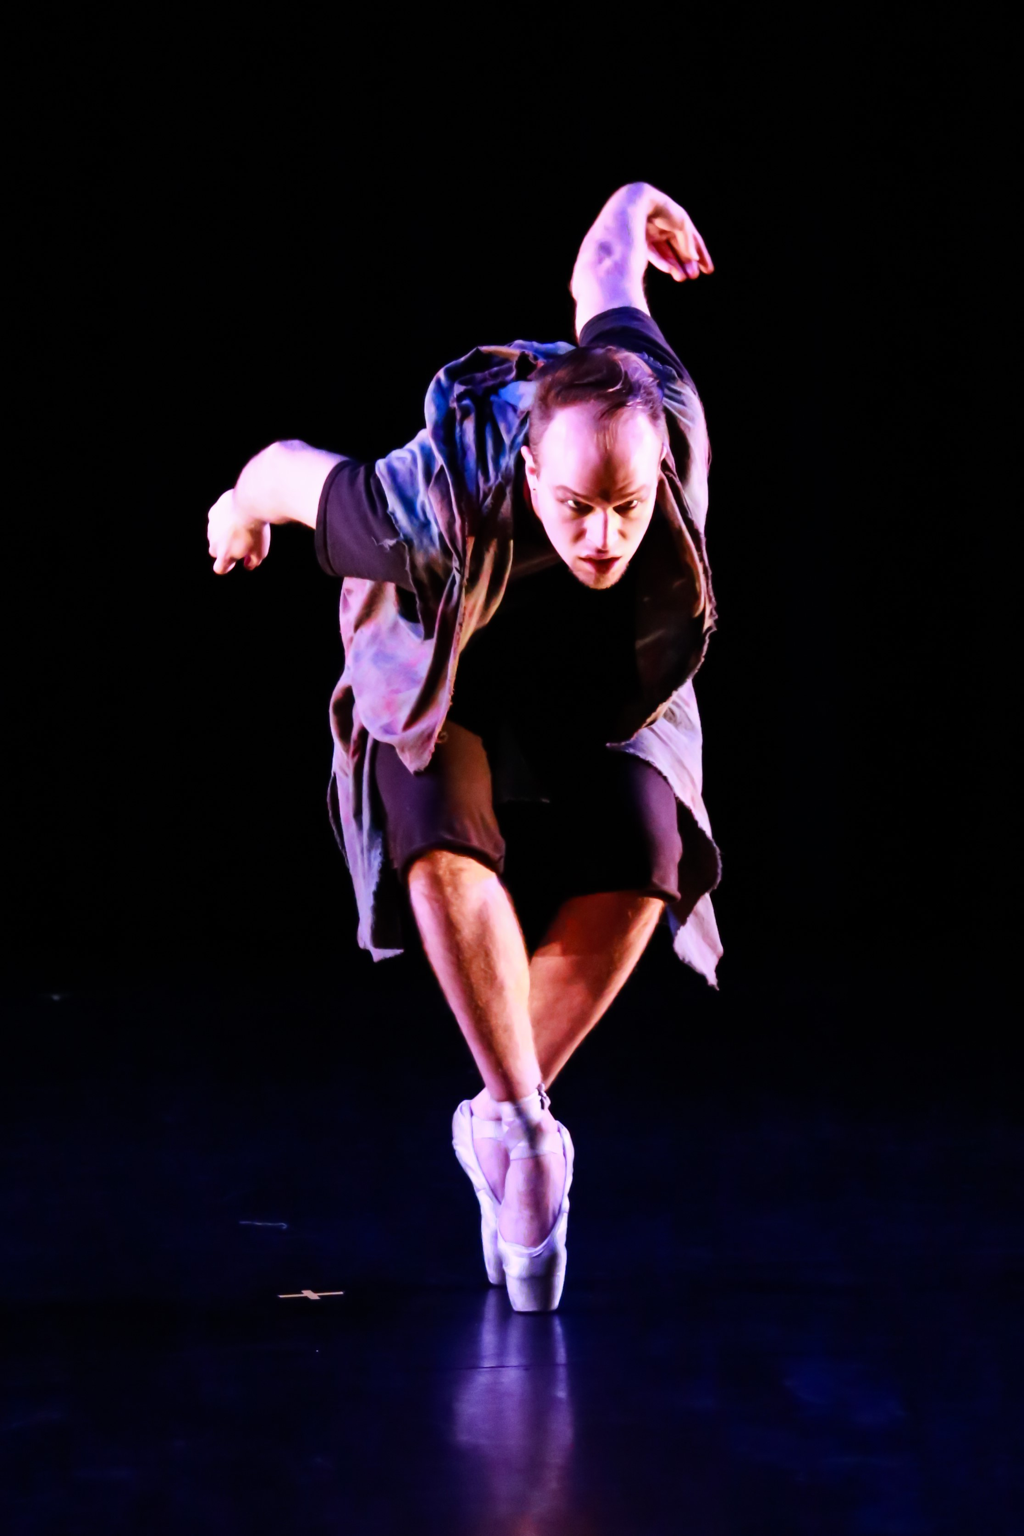 White man in pointe shoes Leaning forward in a crouch Arms extended back